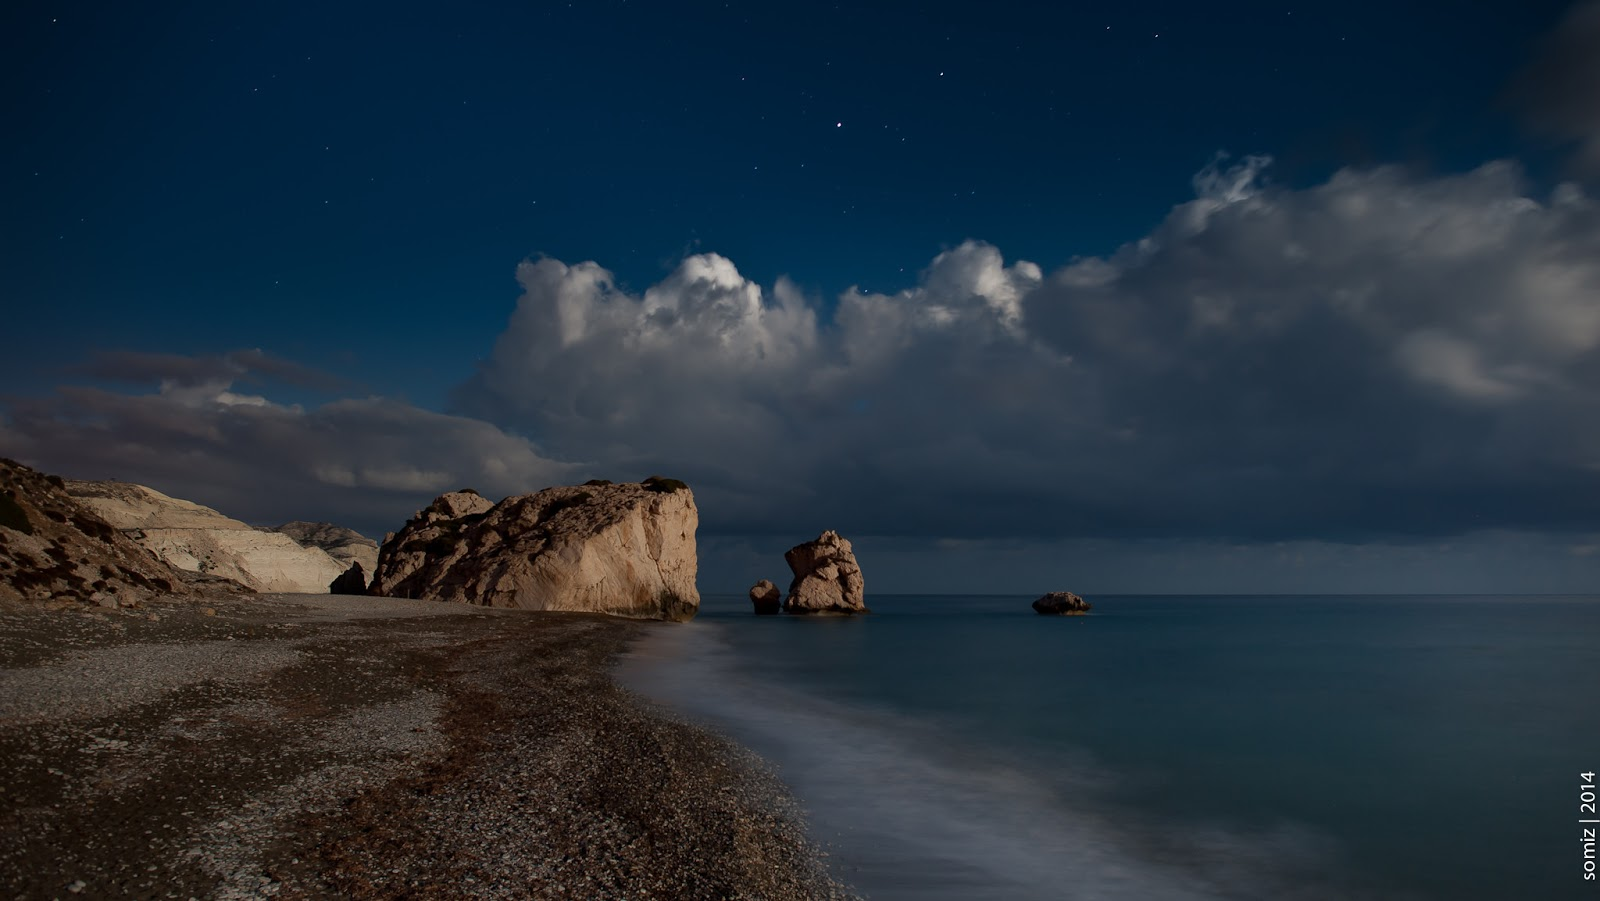 Petra tou Romiou - Cloud Cities and the Energetic Punctures of War